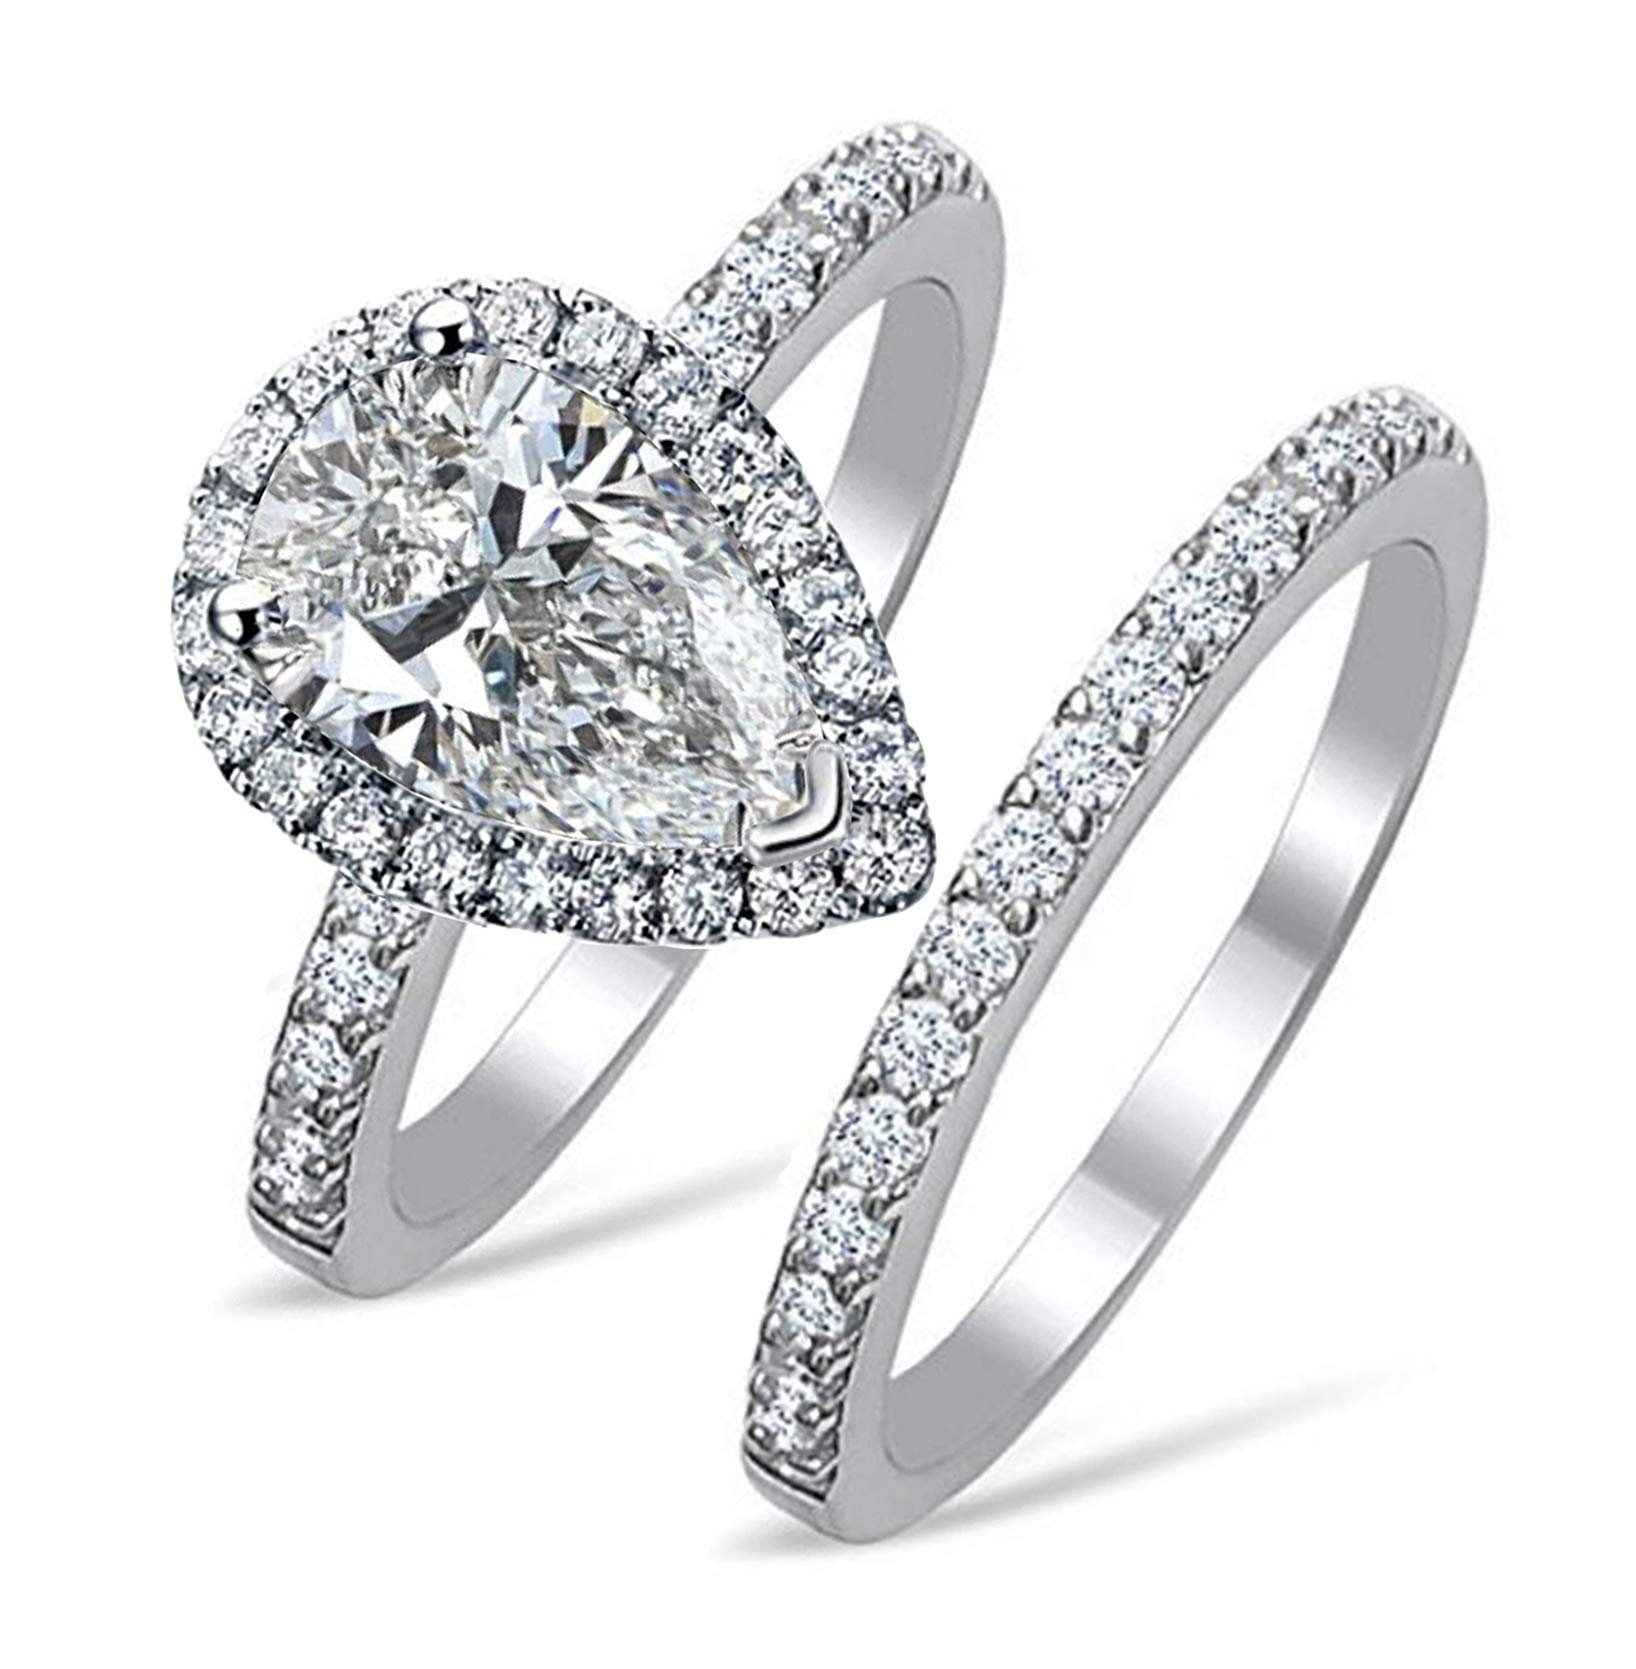 Top Grade NSCD Simulated Diamond Pear Shape Ring Band Set 925 Silver PearS8